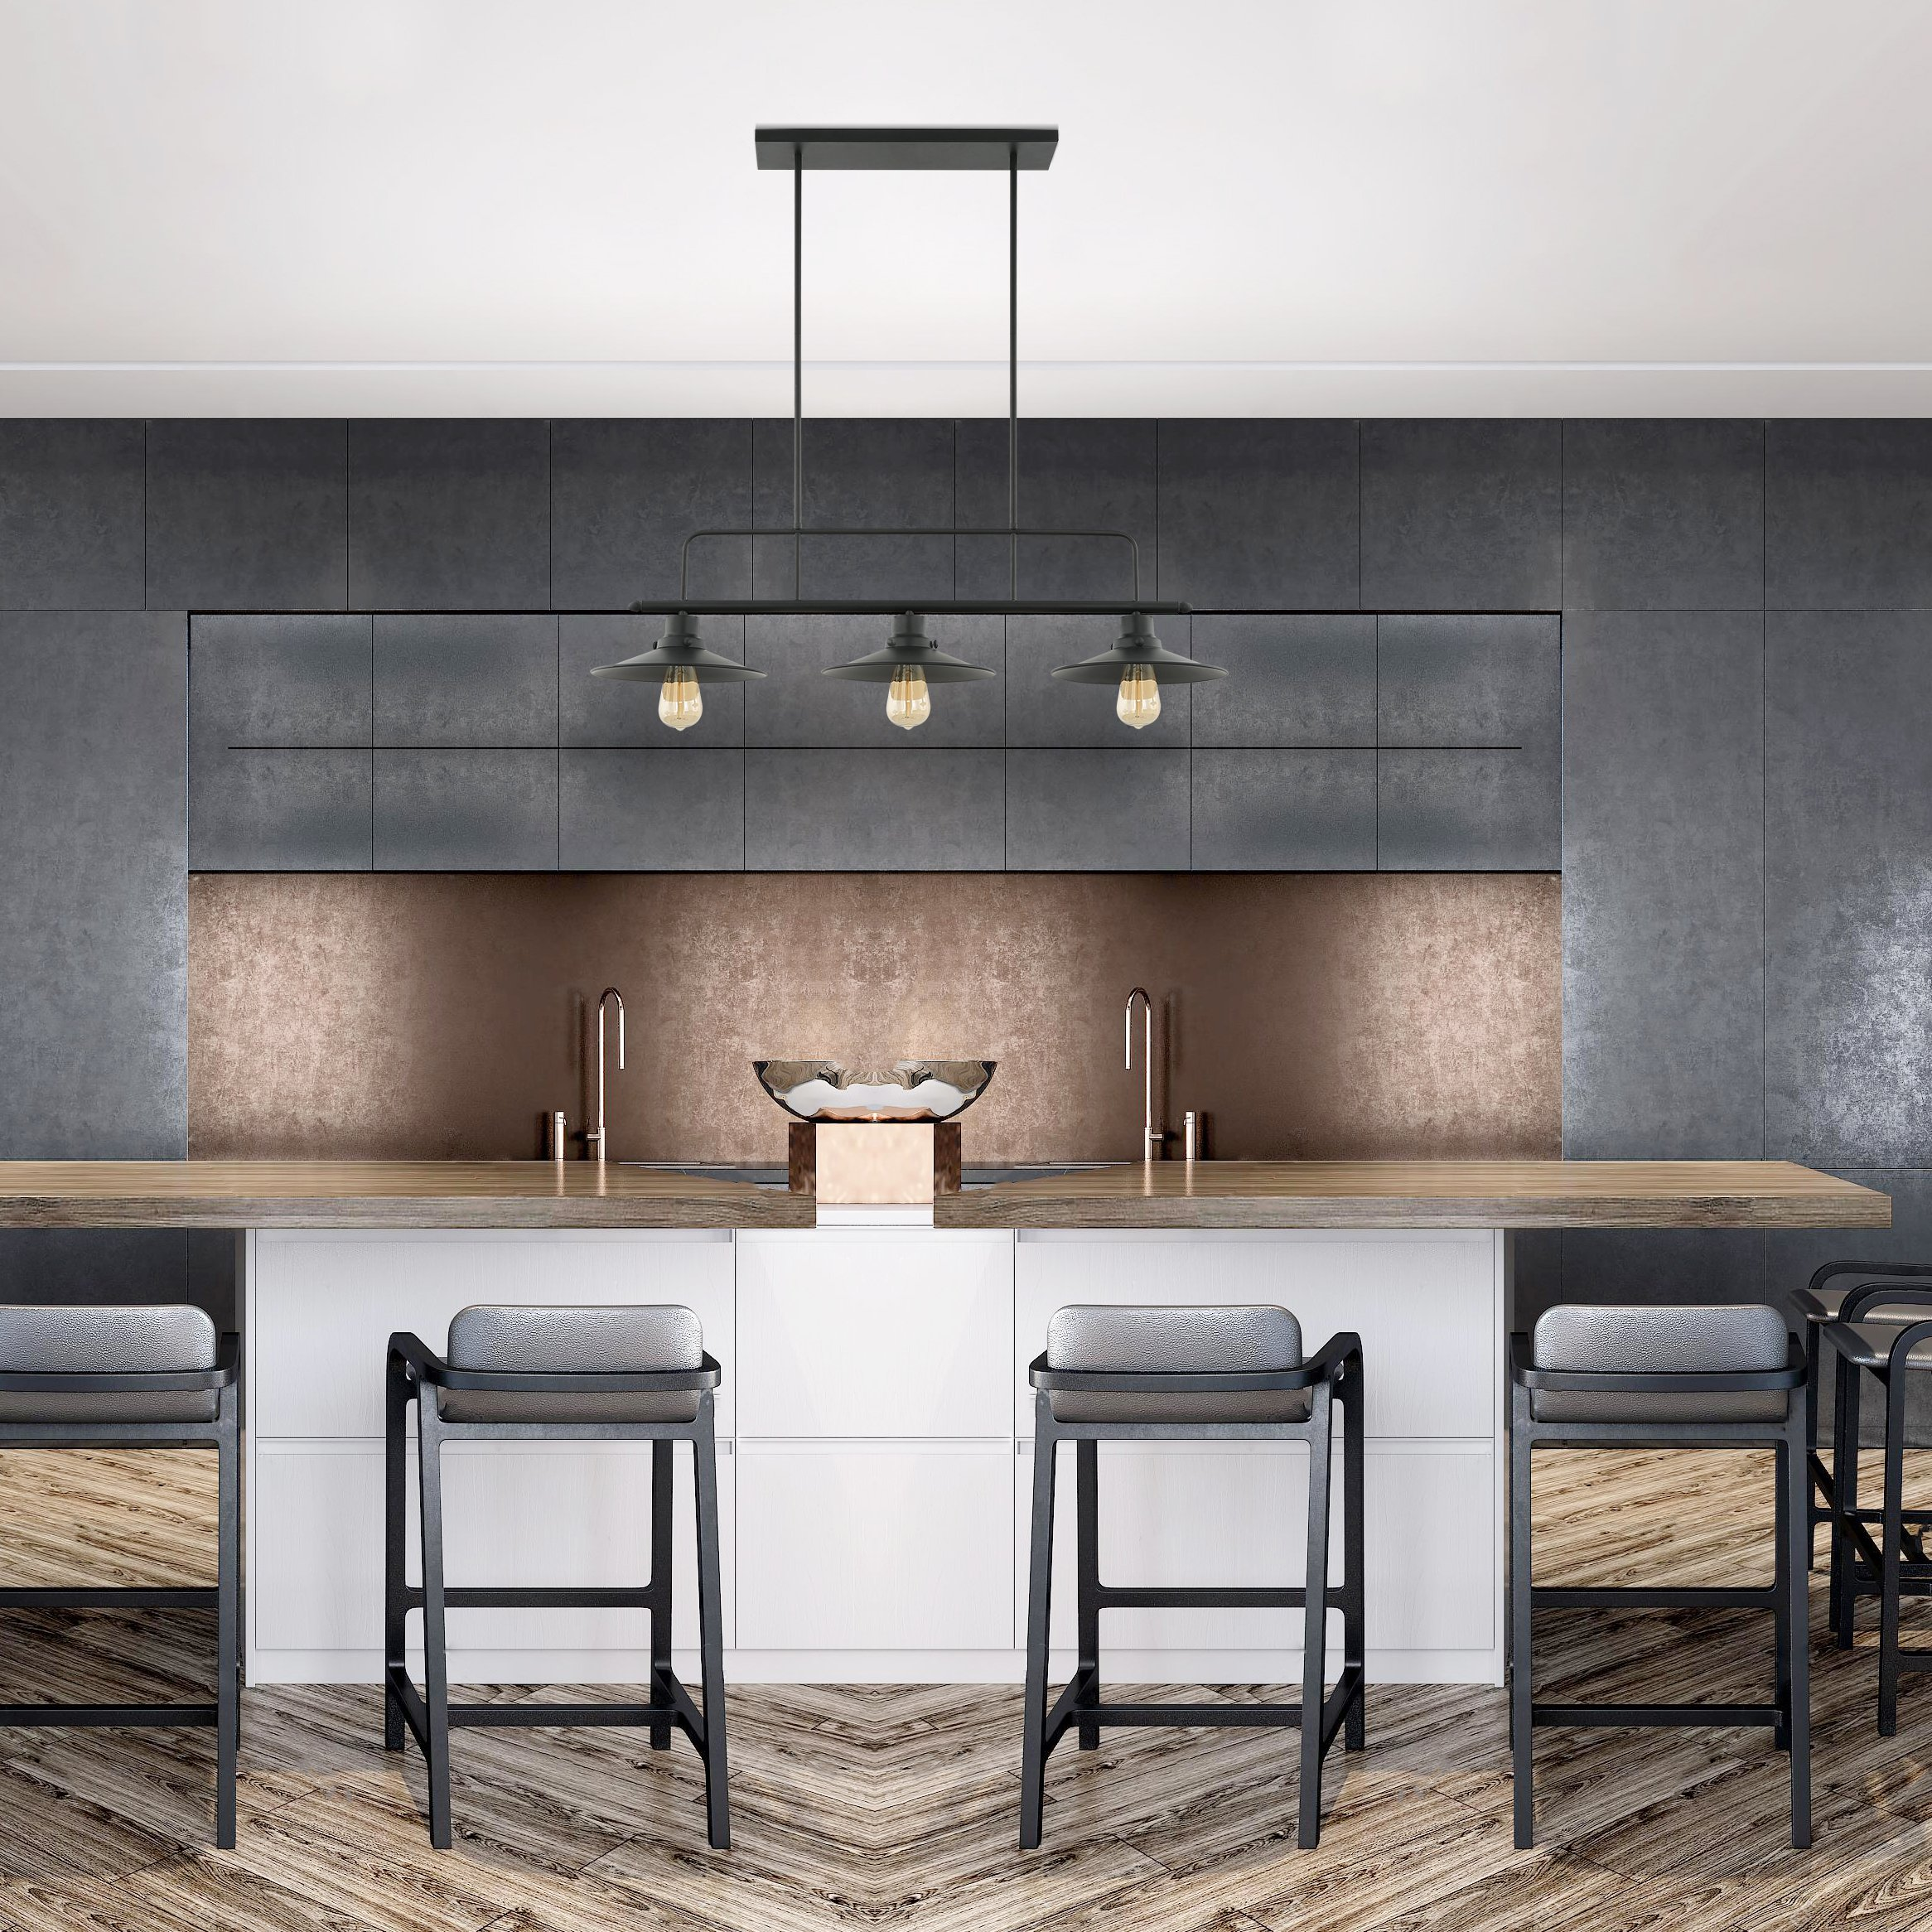 Light Society Margaux 3-Light Kitchen Island Pendant, Matte Black, Vintage Modern Industrial Chandelier (LS-C114) by Light Society (Image #4)